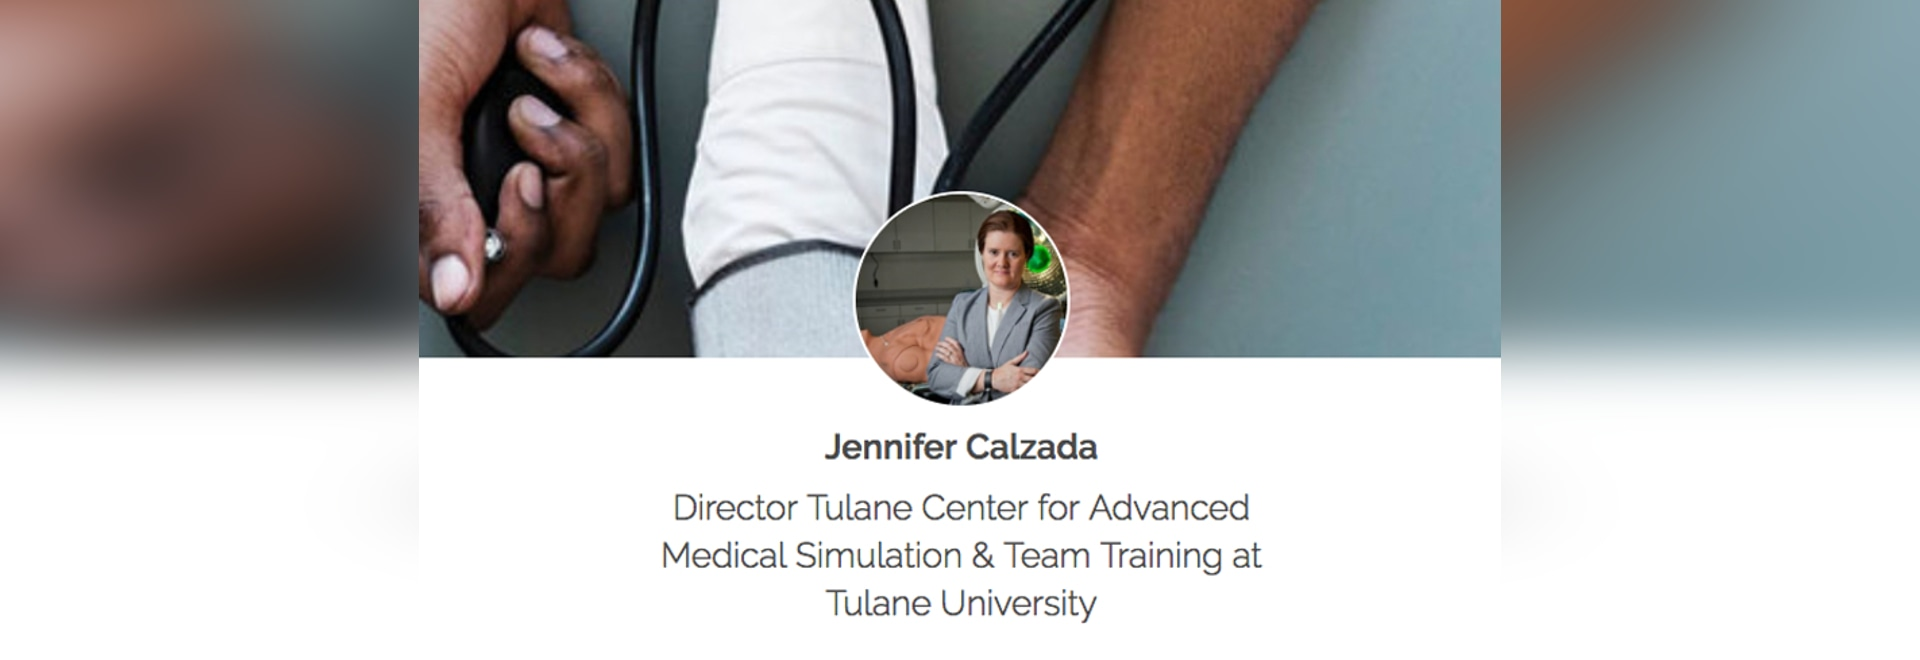 Jennifer Calzada - Creating Realistic Ambulance Simulation for Tulane's Future Healthcare Professionals